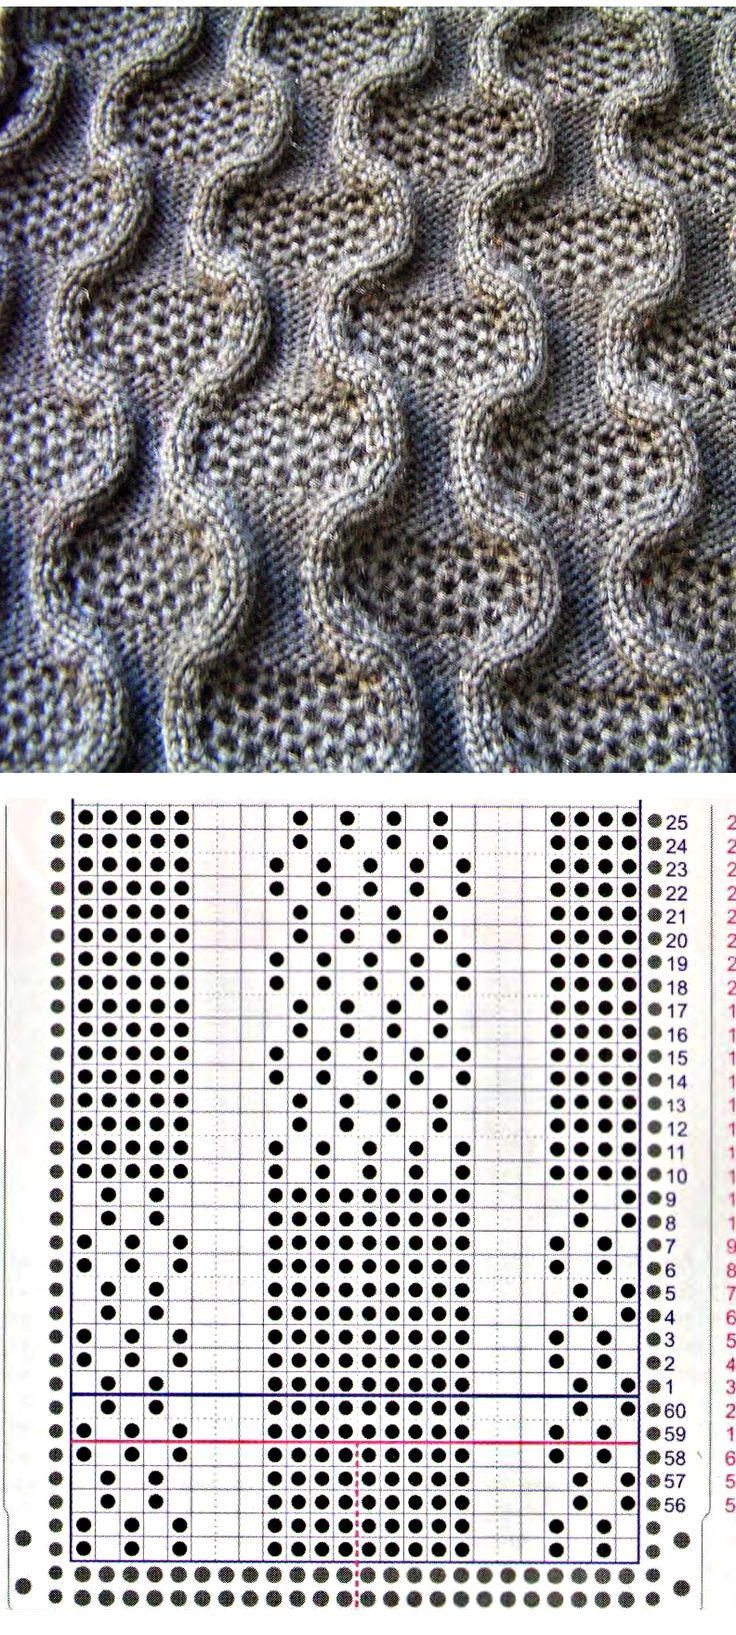 160 best machine knitting images on Pinterest | Sewing ideas ...